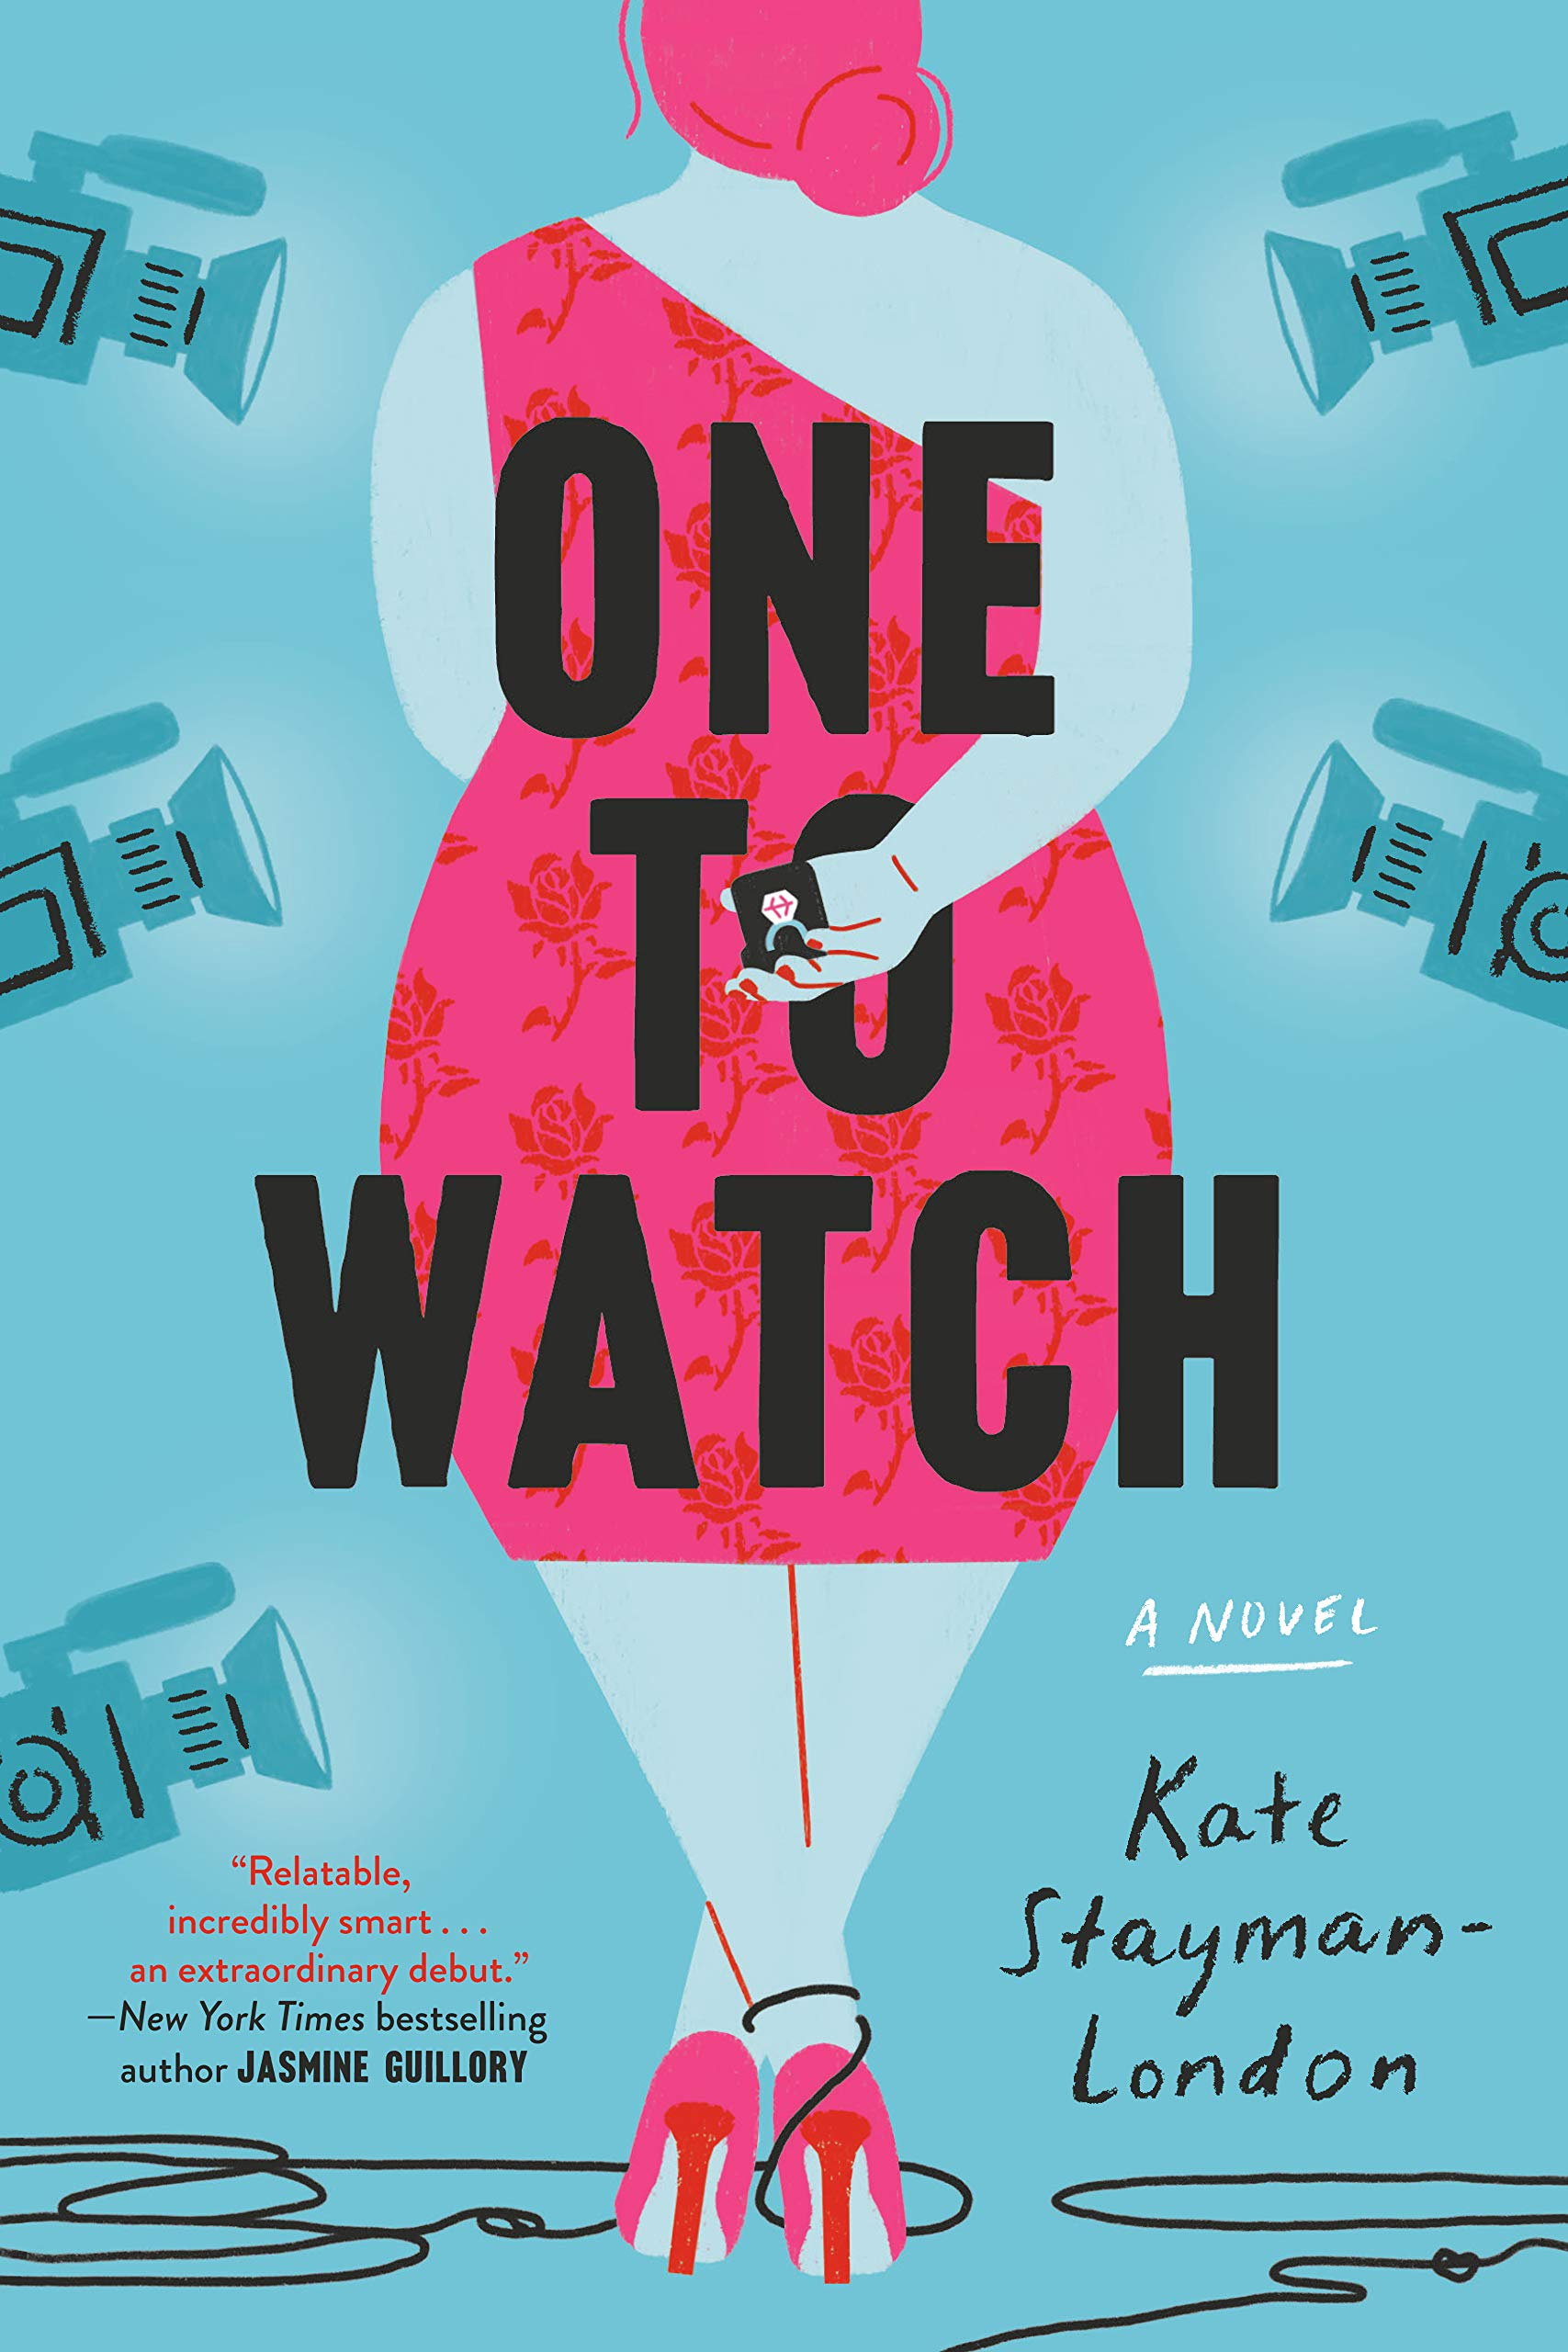 about the book: One To Watch